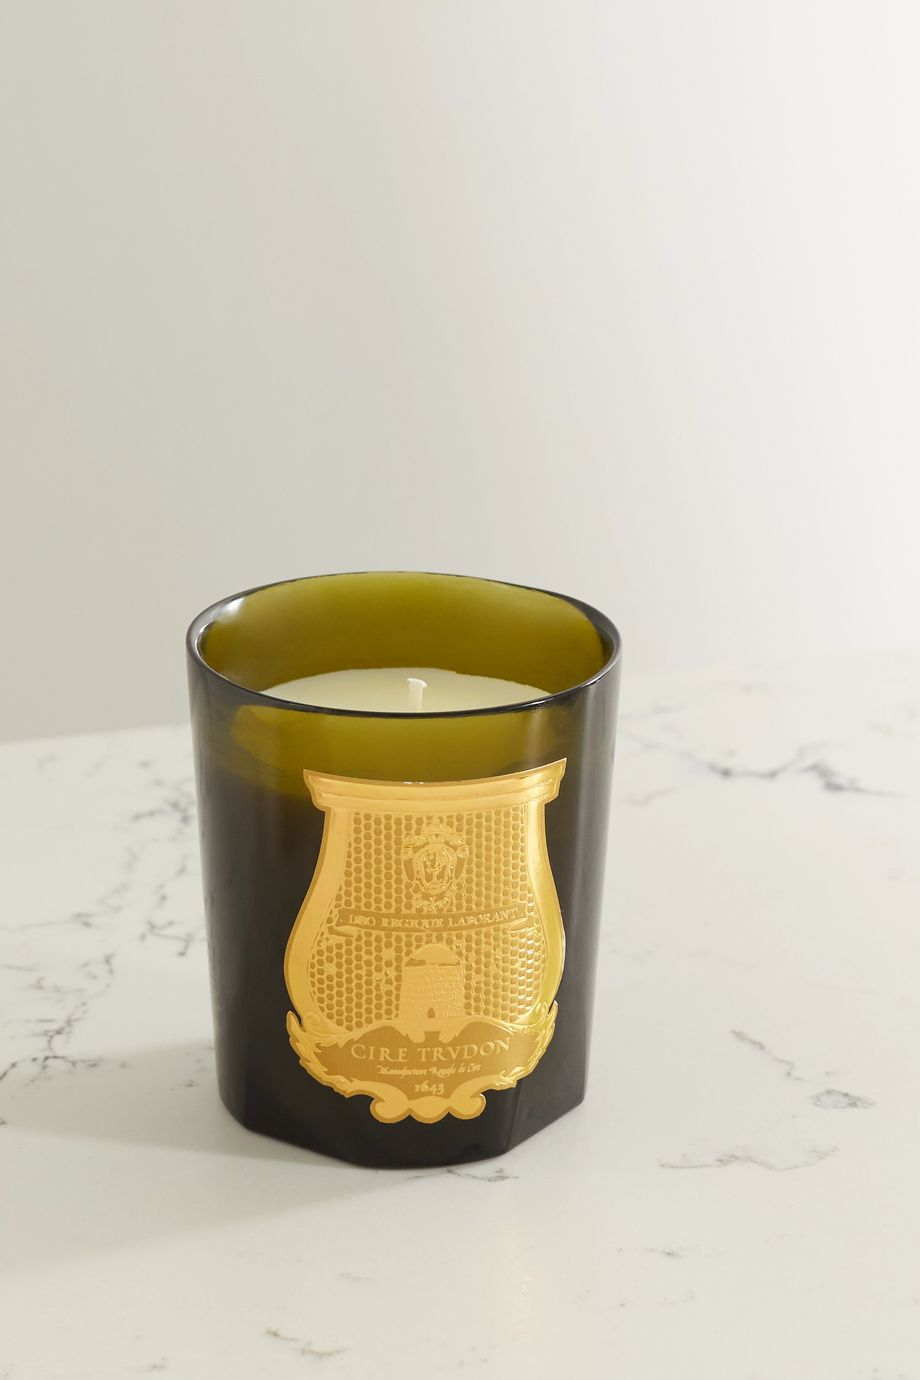 Cire Trudon Solis Rex scented candle, 270g